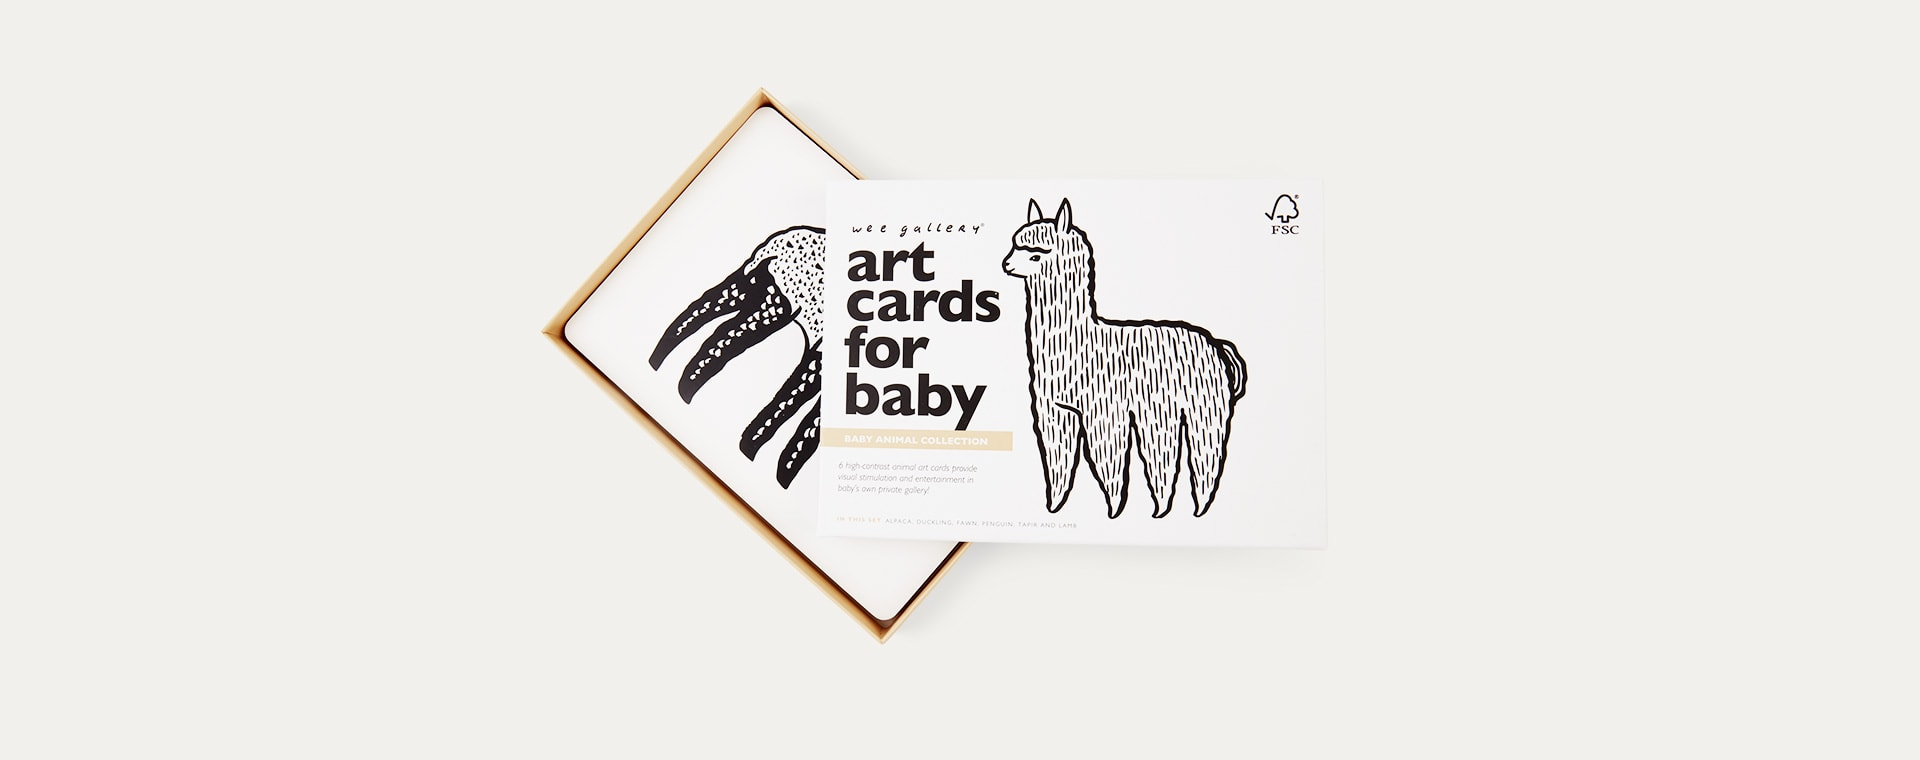 Baby Animals Wee Gallery Art Cards for Baby